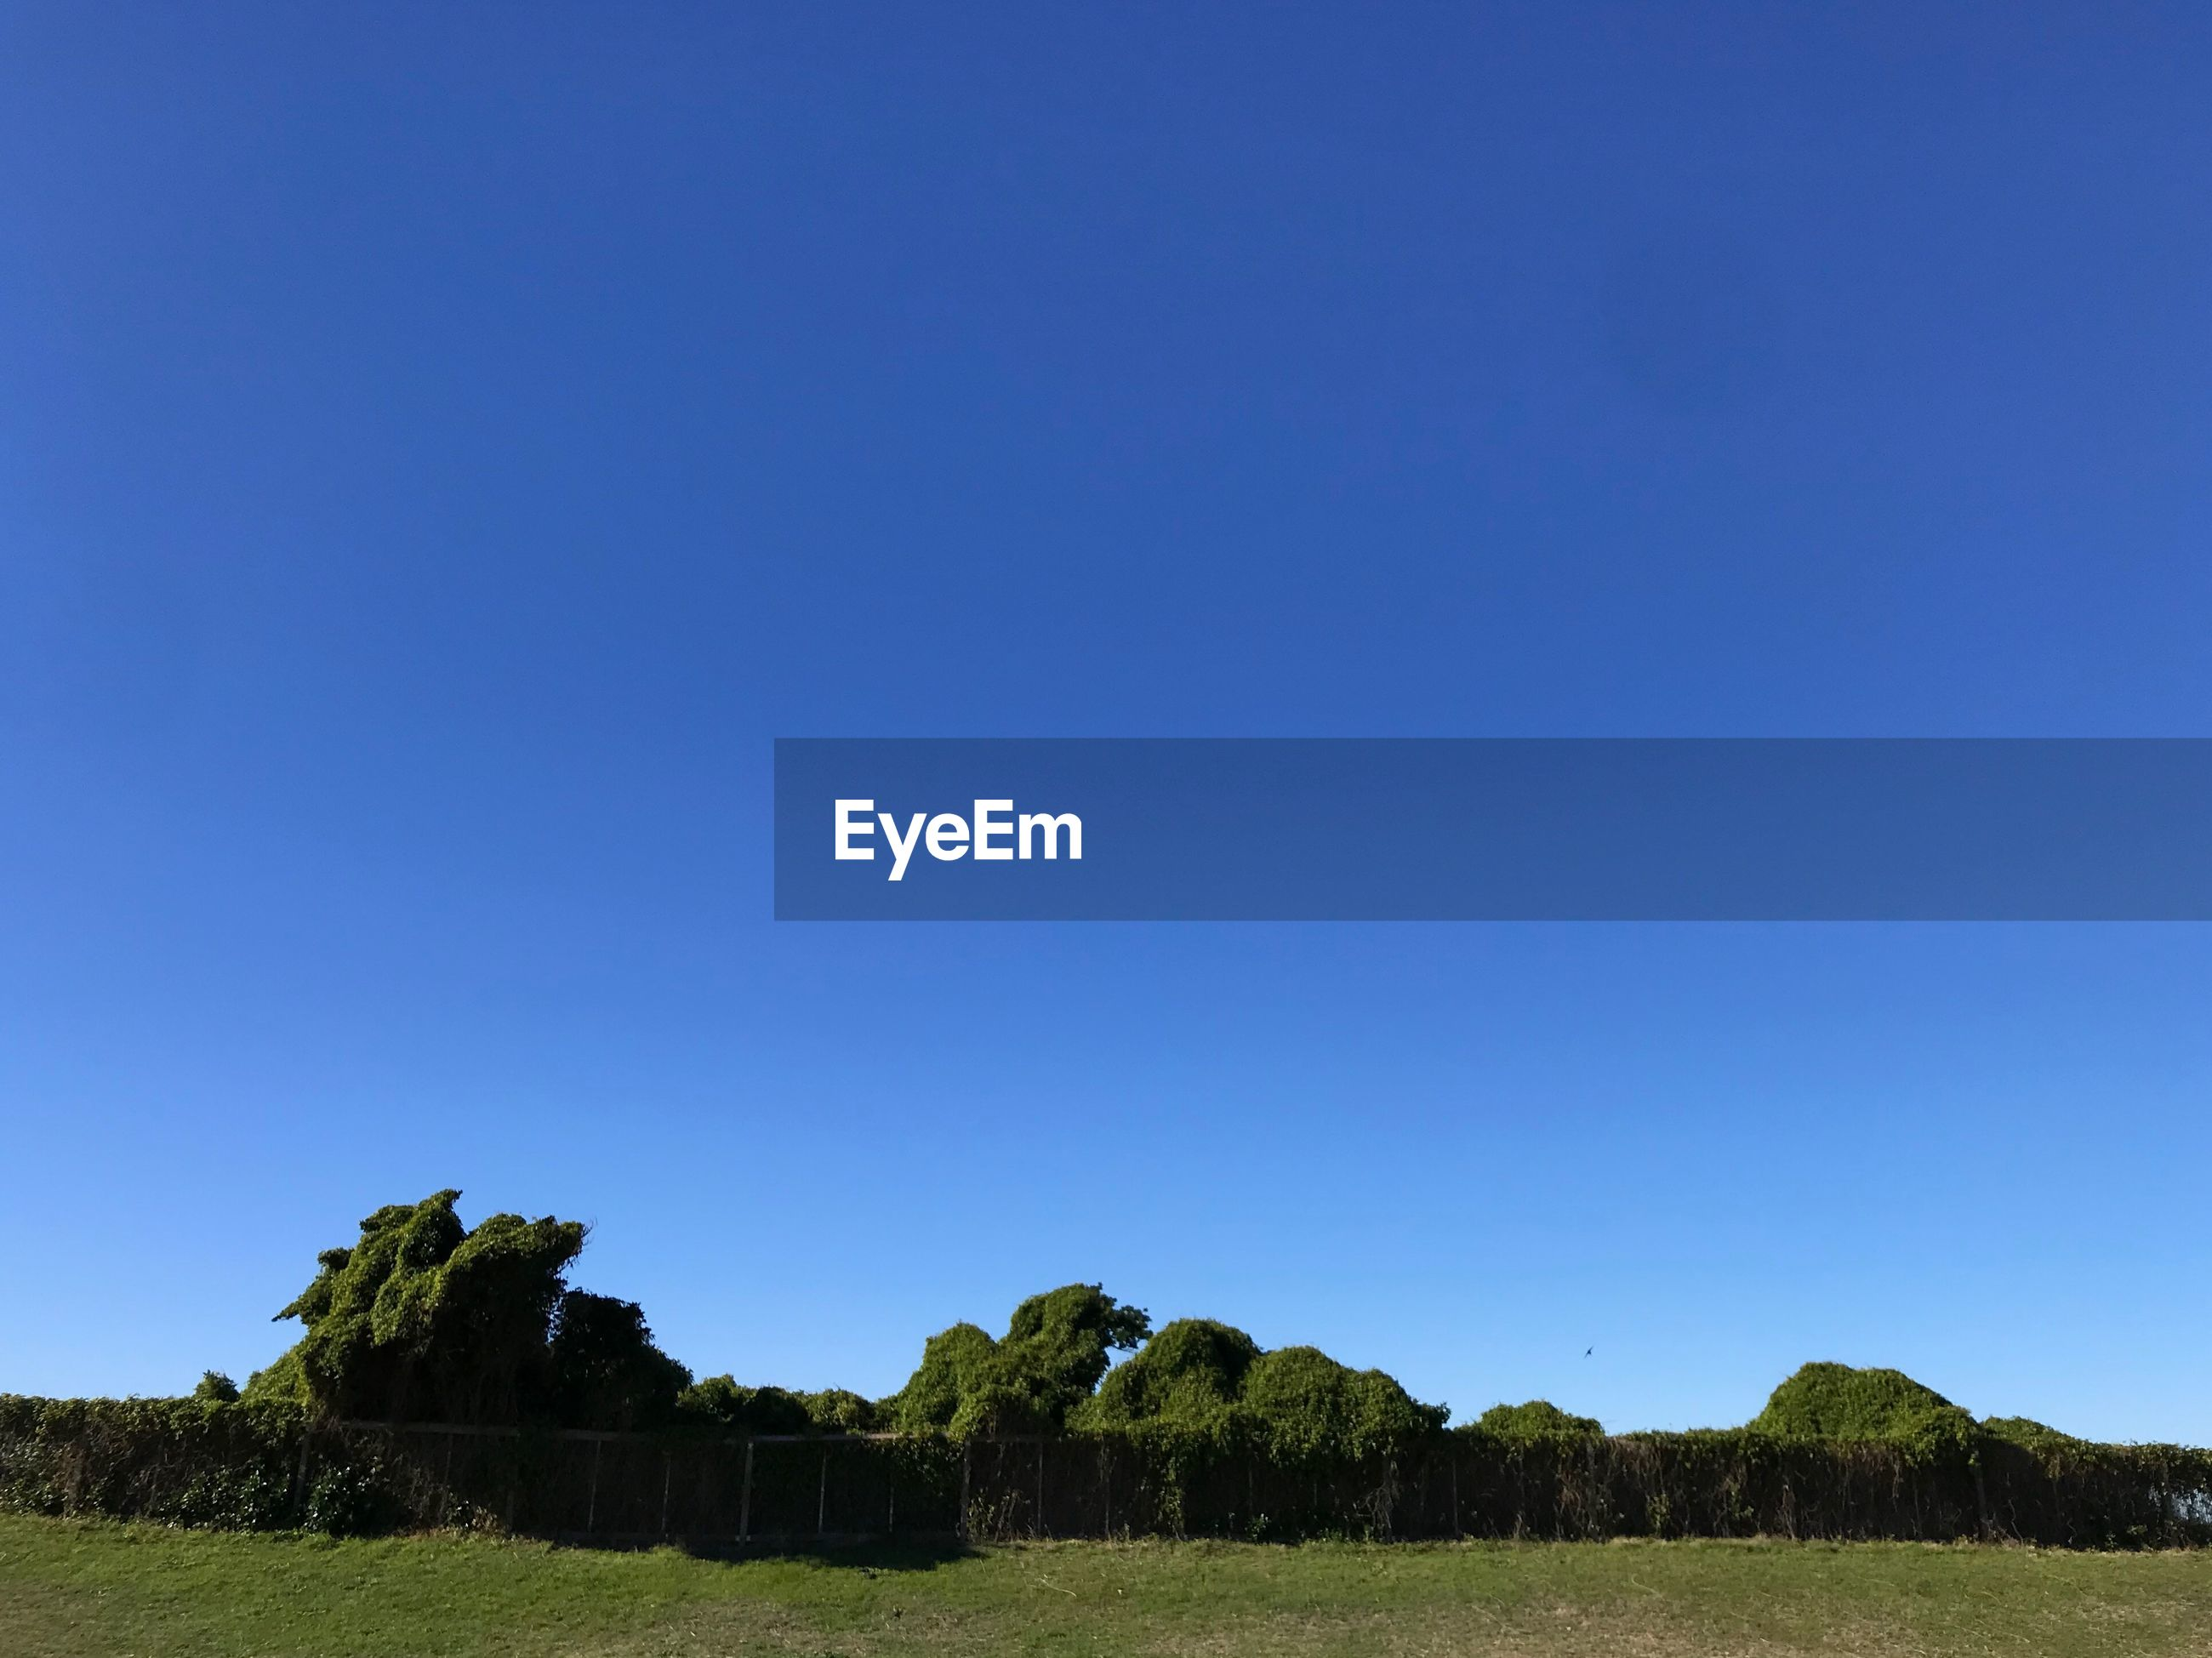 SCENIC VIEW OF TREES AGAINST CLEAR BLUE SKY